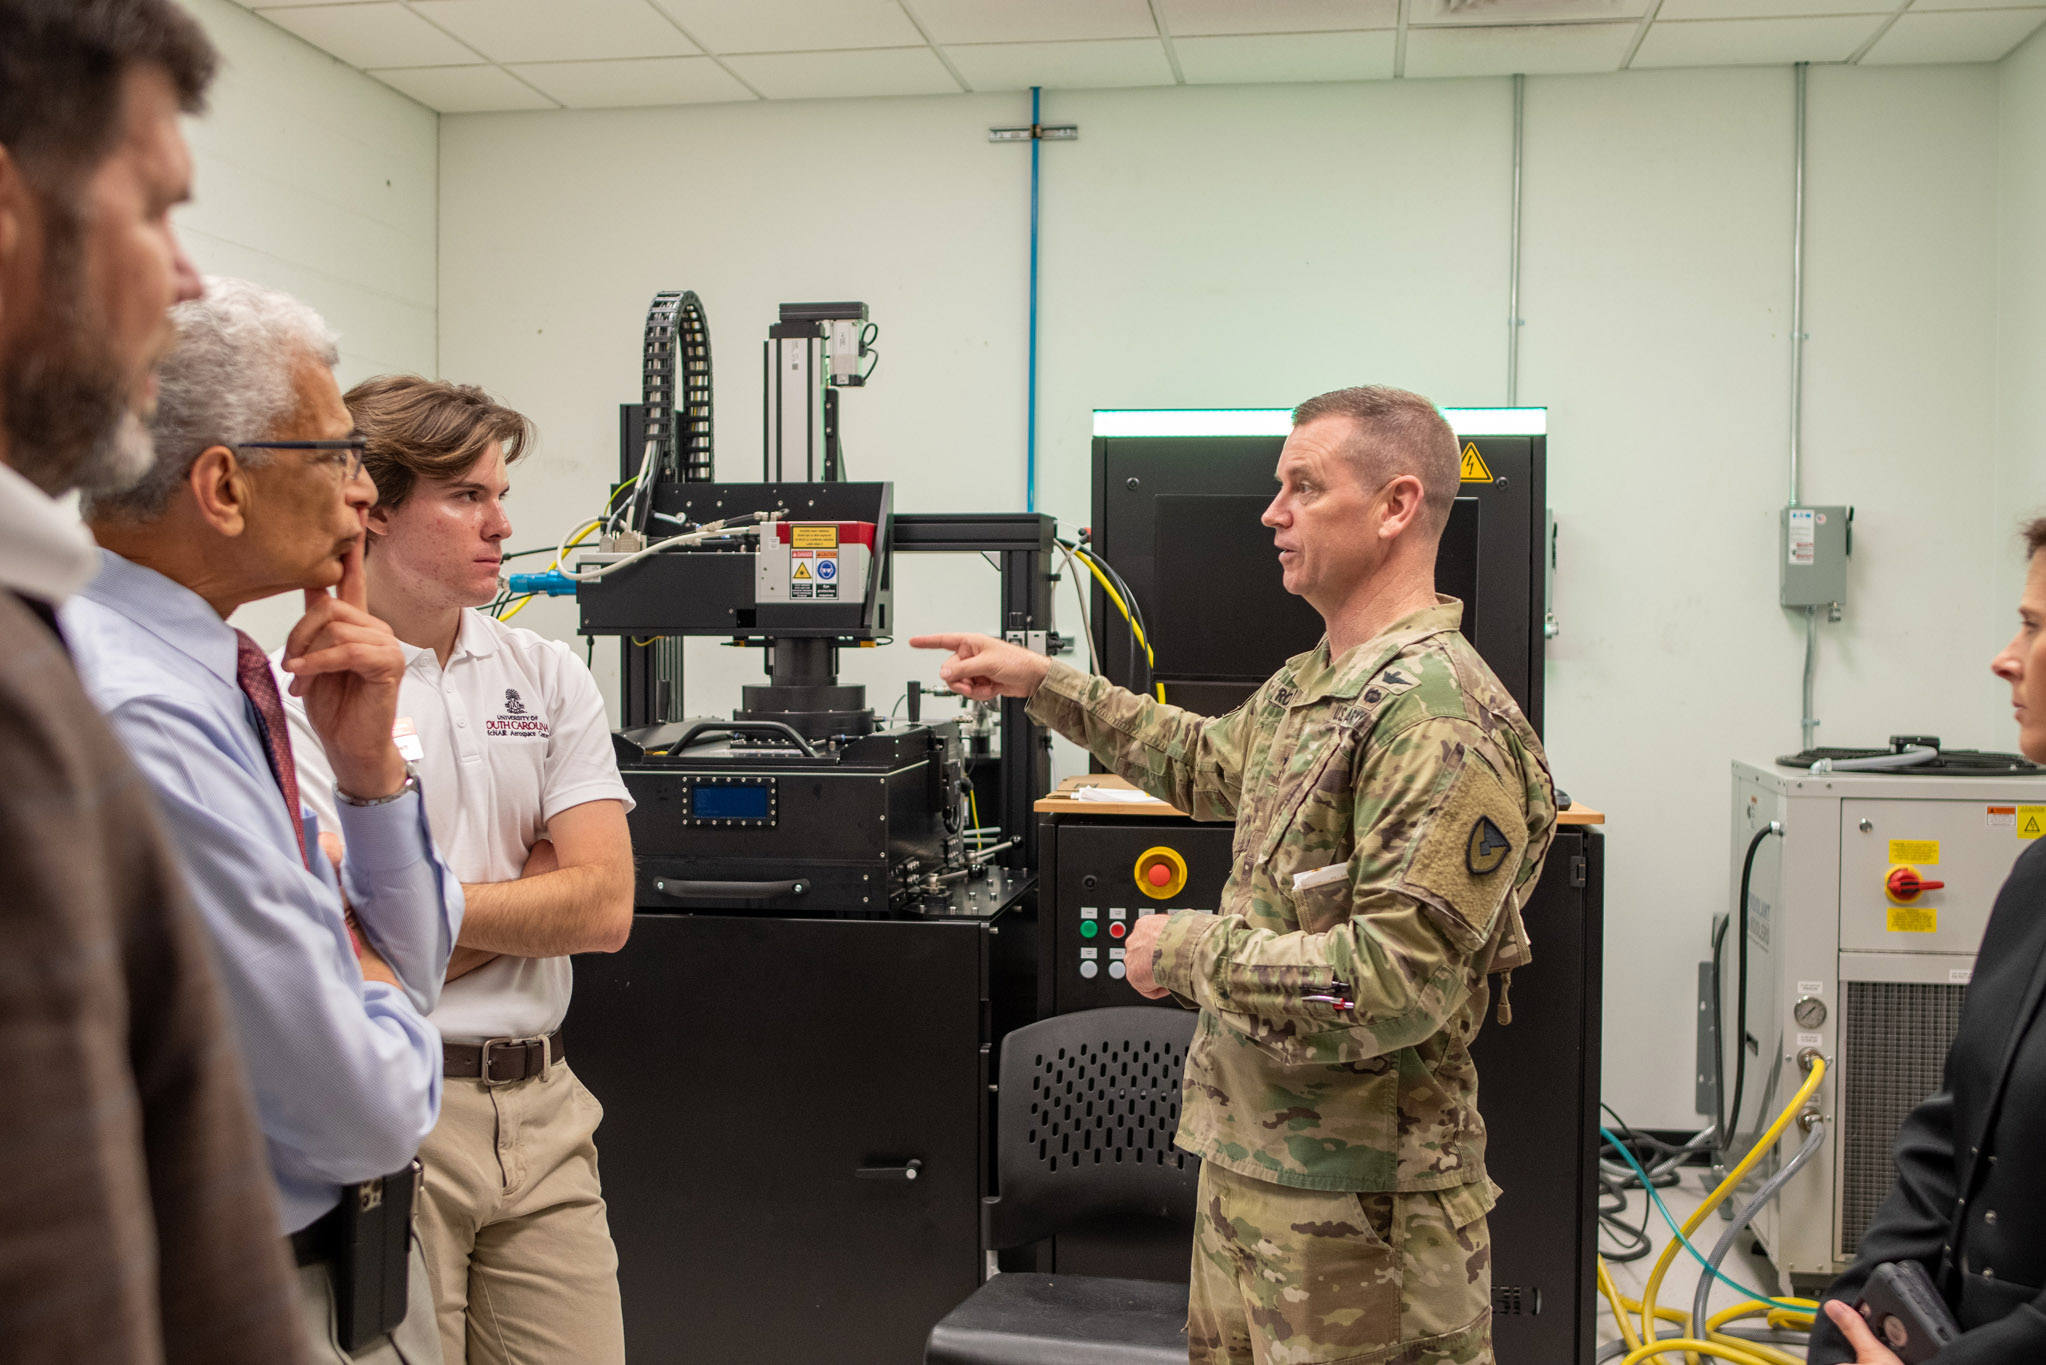 MCOM Commander Maj. Gen. Todd Royar talking with a student and Dr. Bayoumi in a lab space.